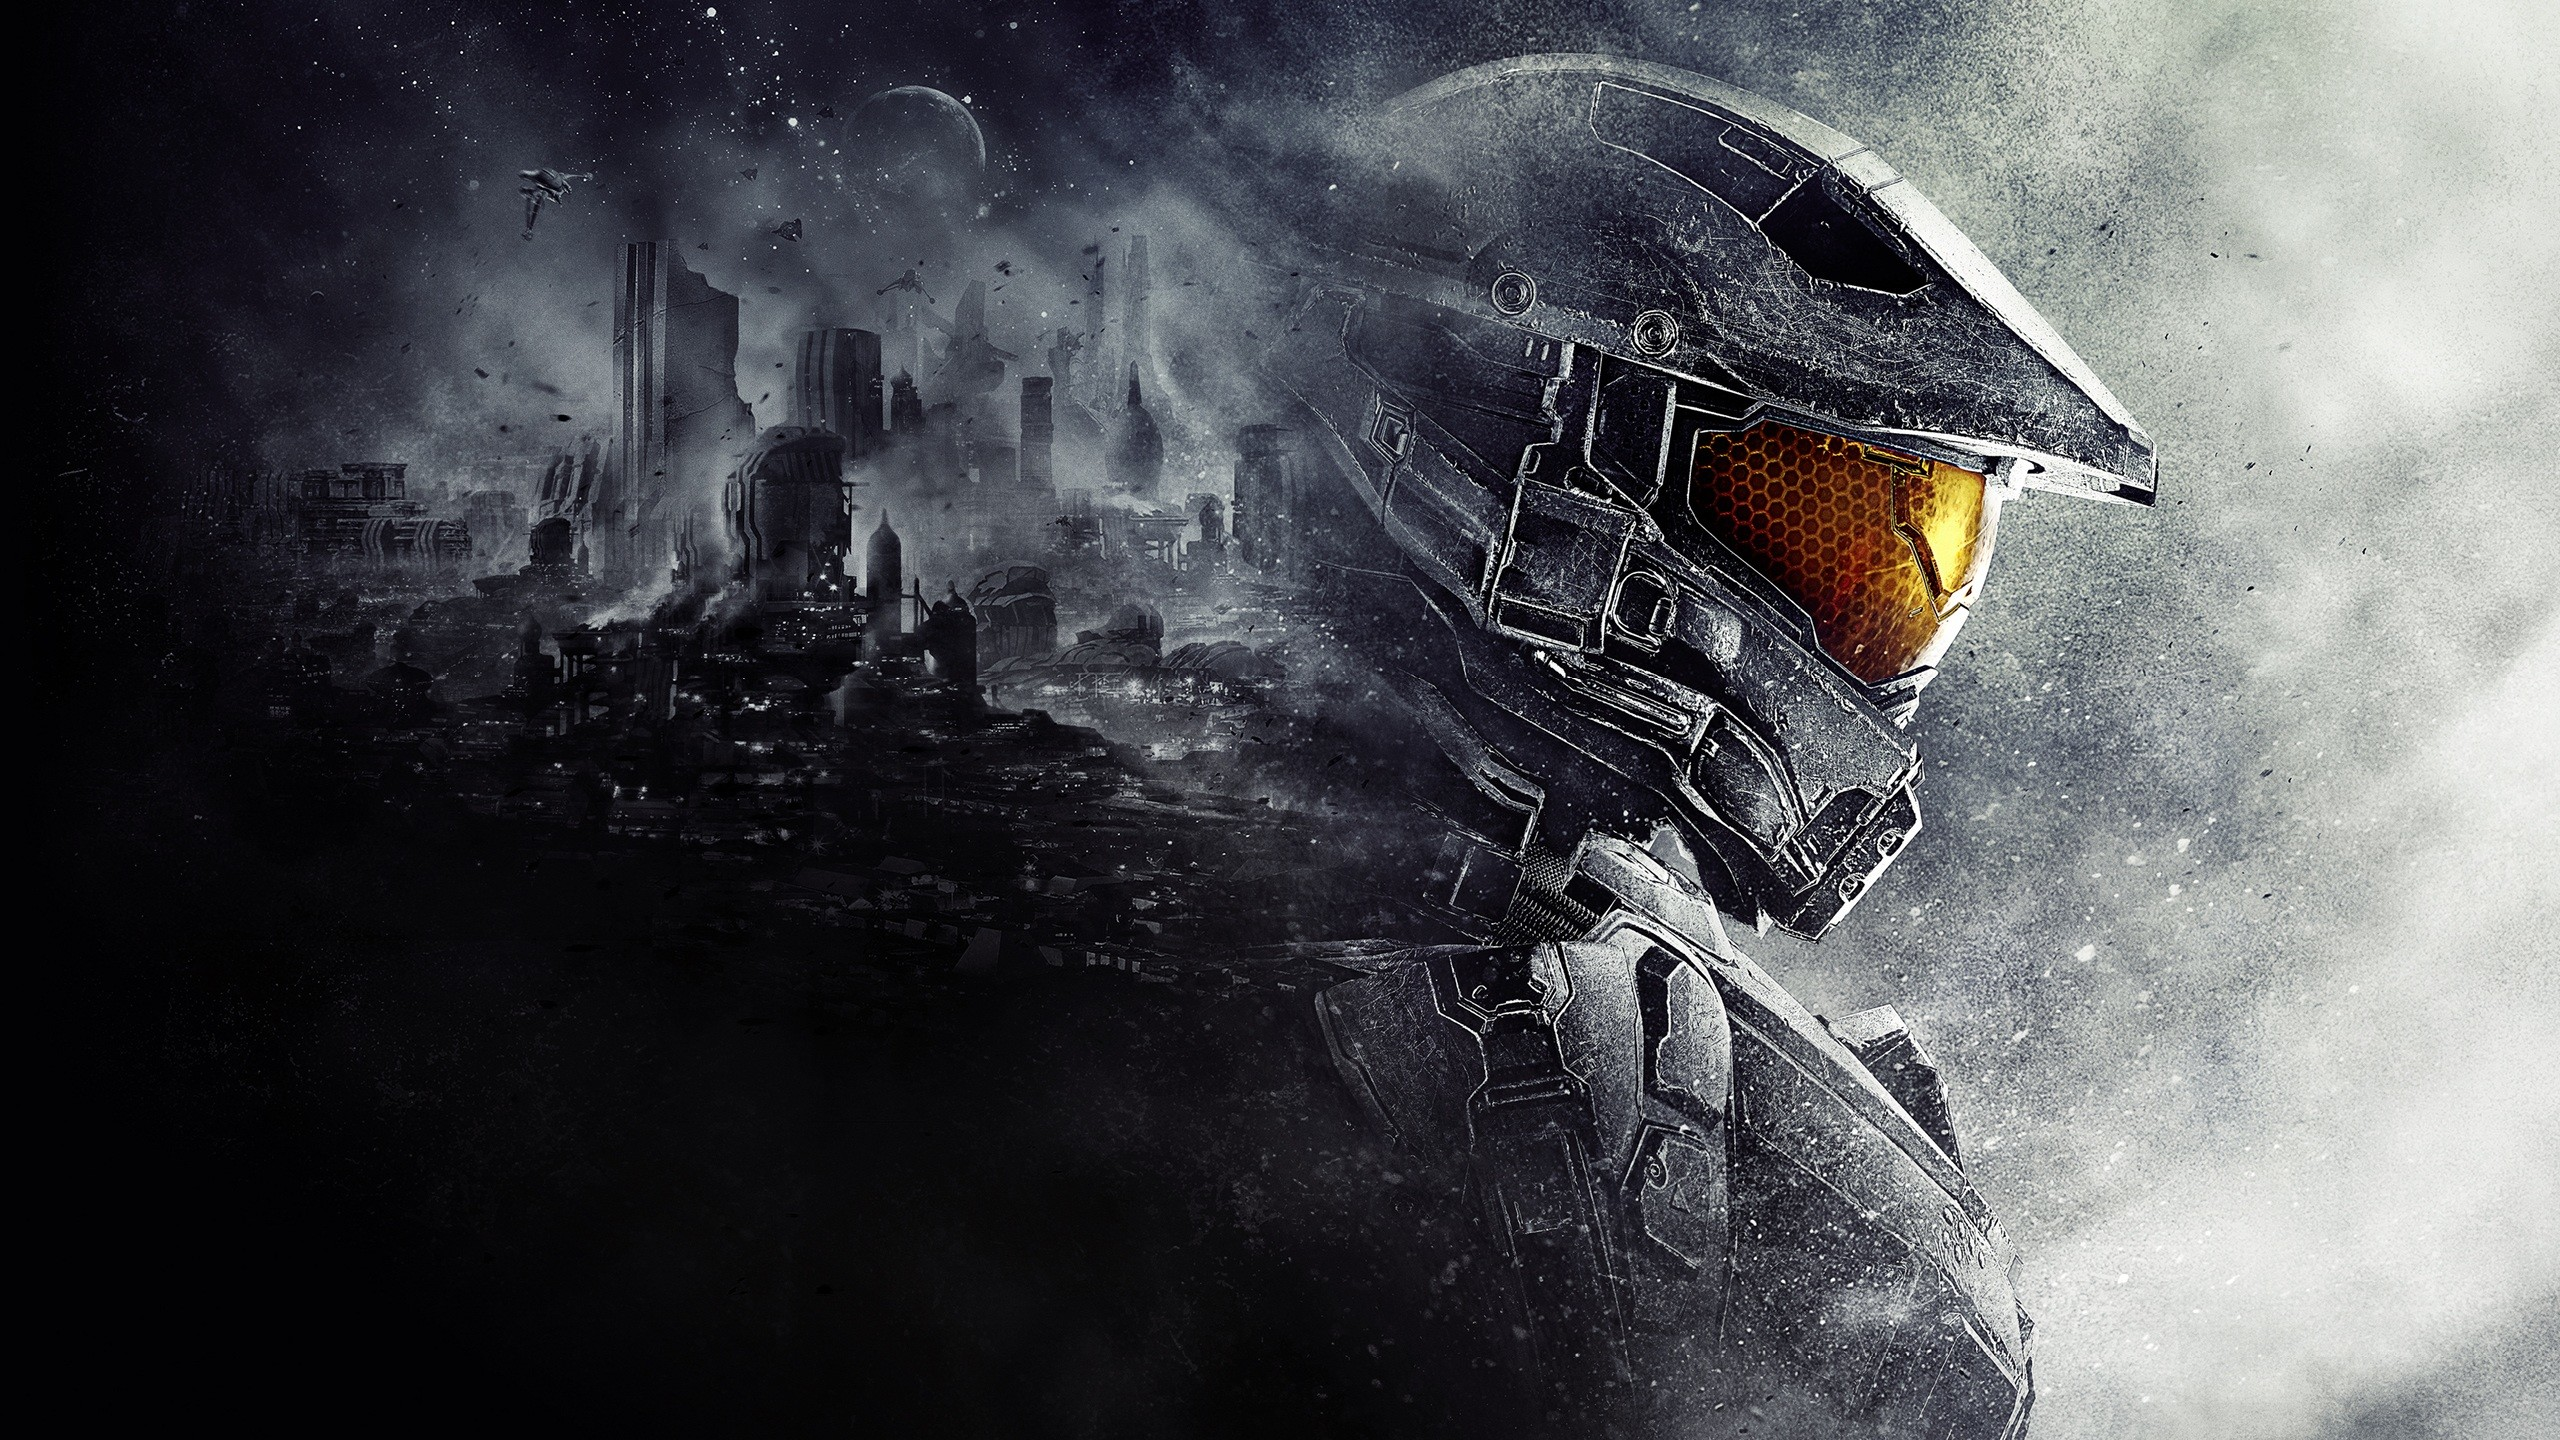 Hd Halo Wallpaper 76 Images